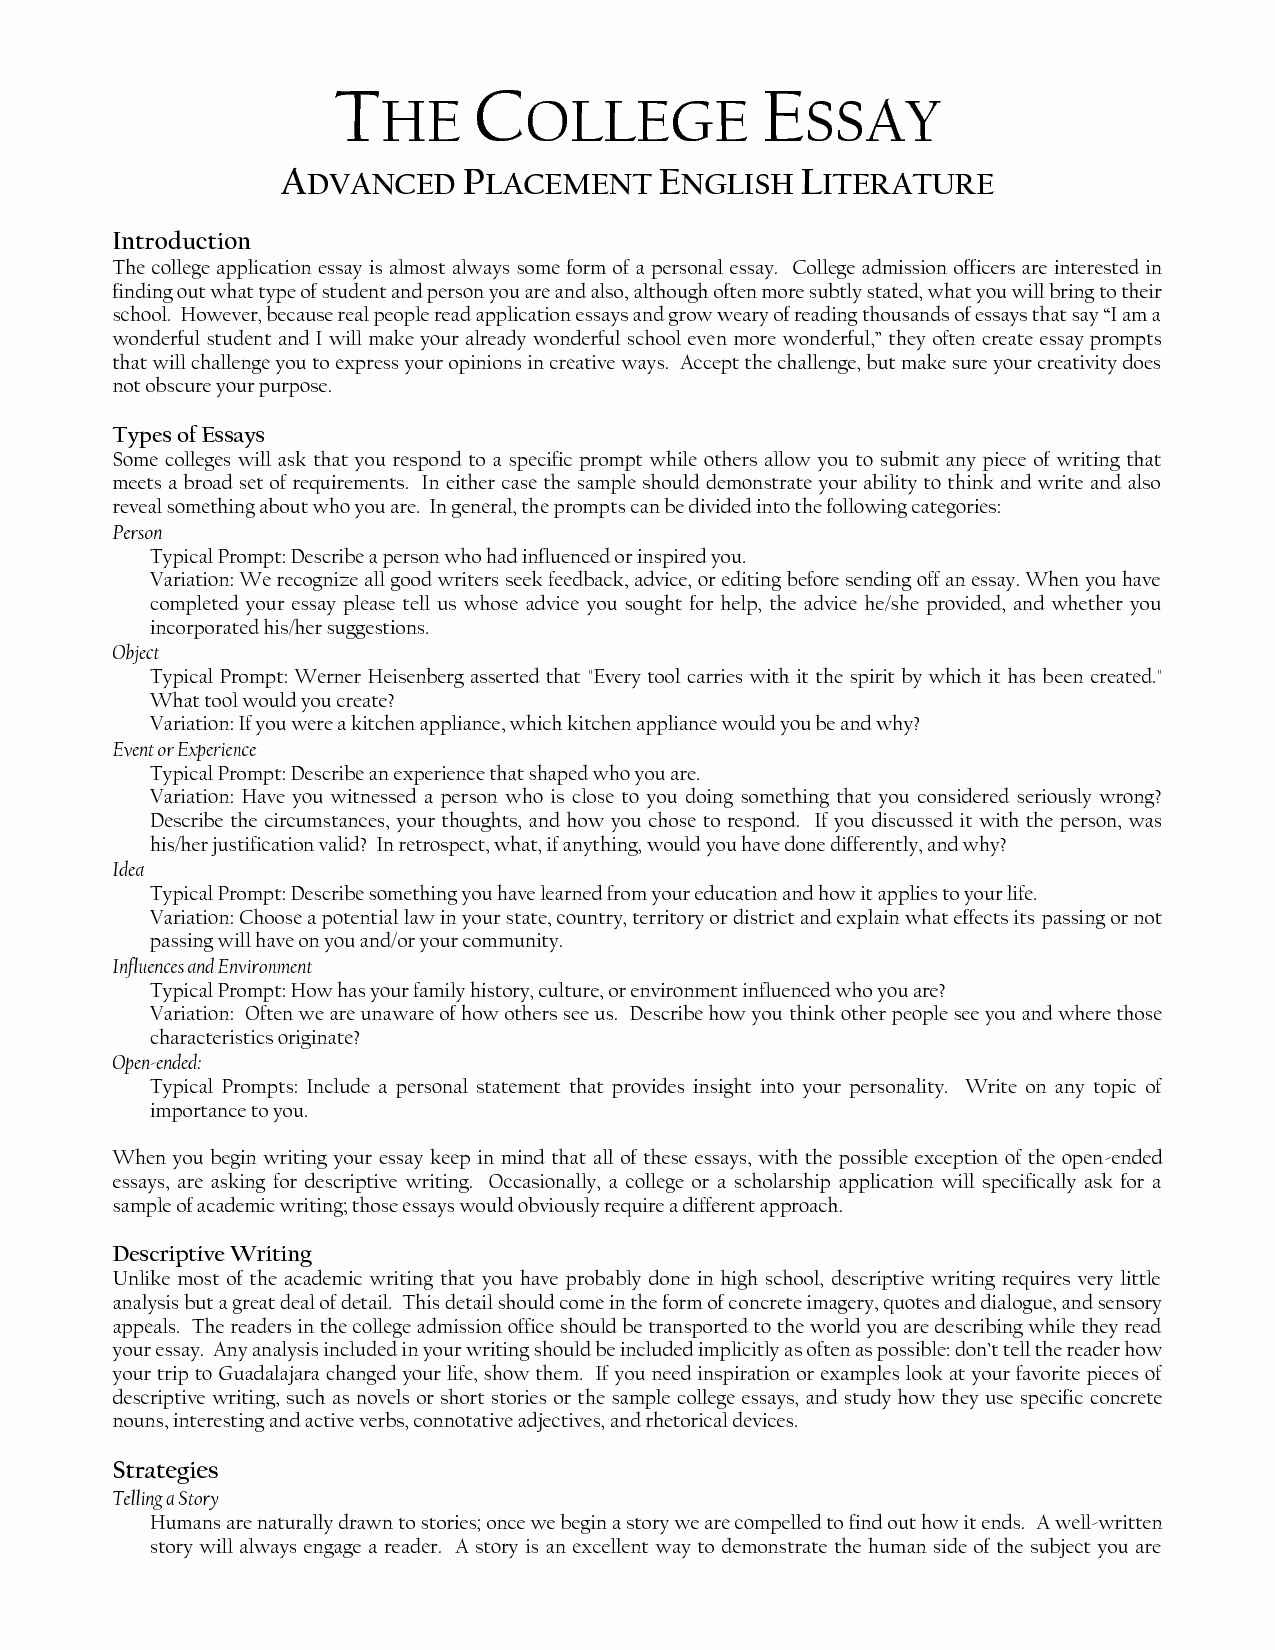 Free Illustration Essay Examples New Best S Of Essay format Examples Proper Essay format